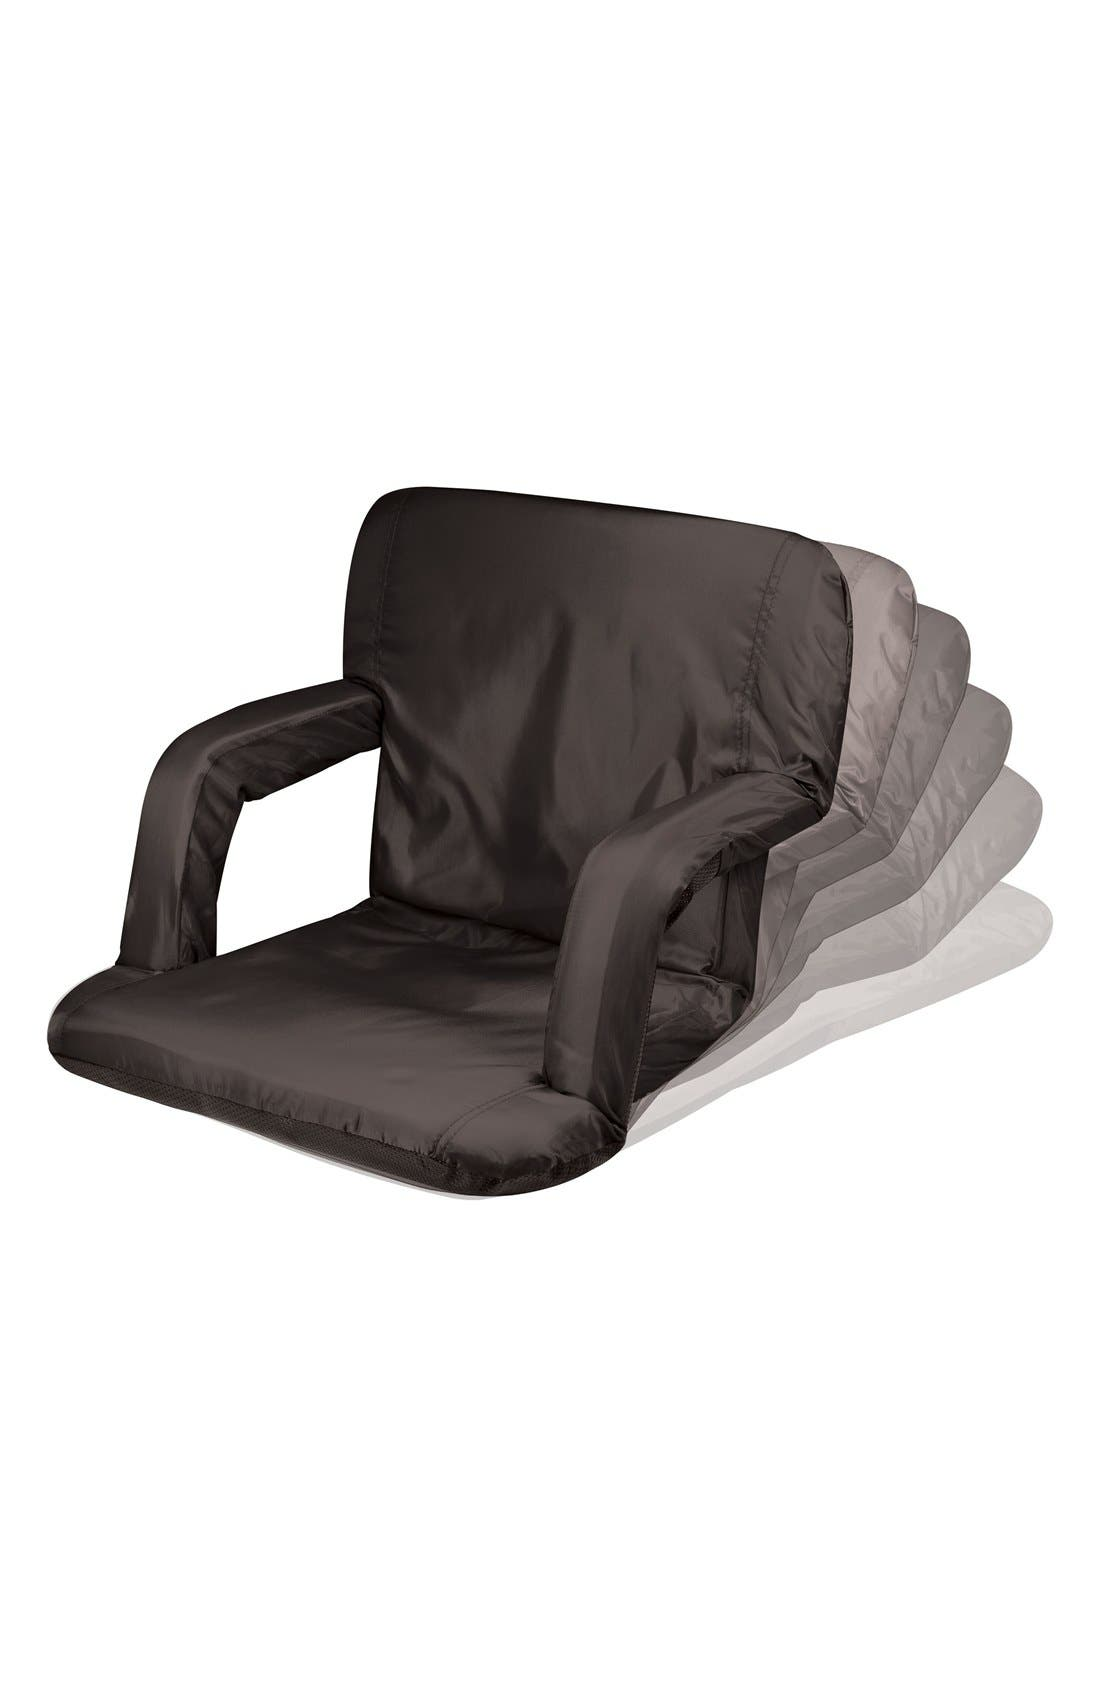 Alternate Image 3  - Picnic Time 'VenturaSeat' Portable Fold-Up Chair